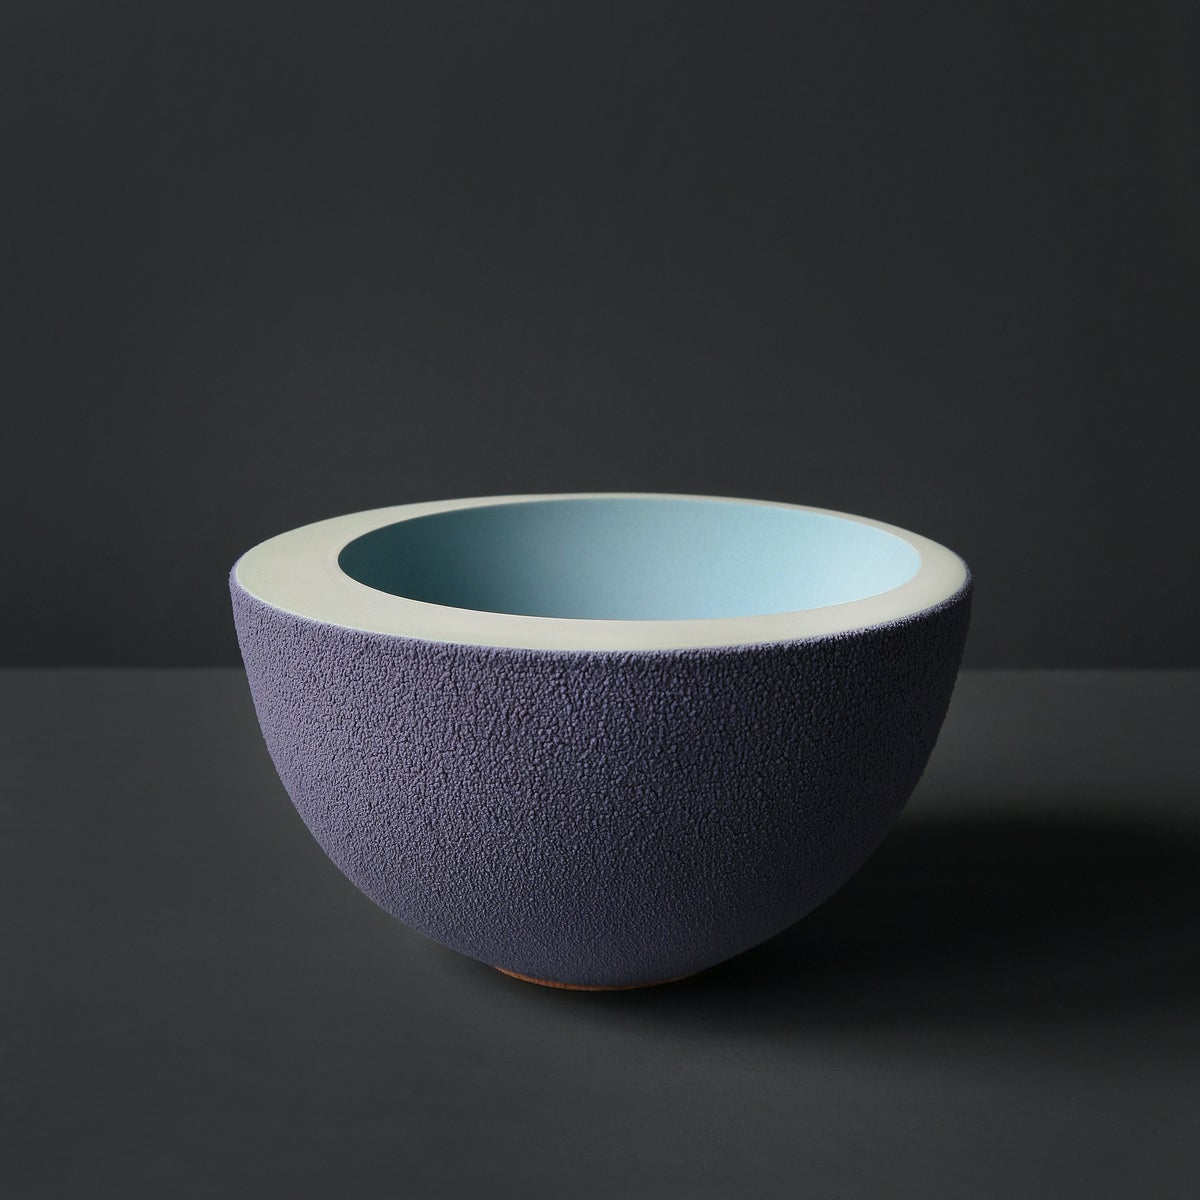 Image of Landscape // Colour Vessel #3 by Sophie Southgate.